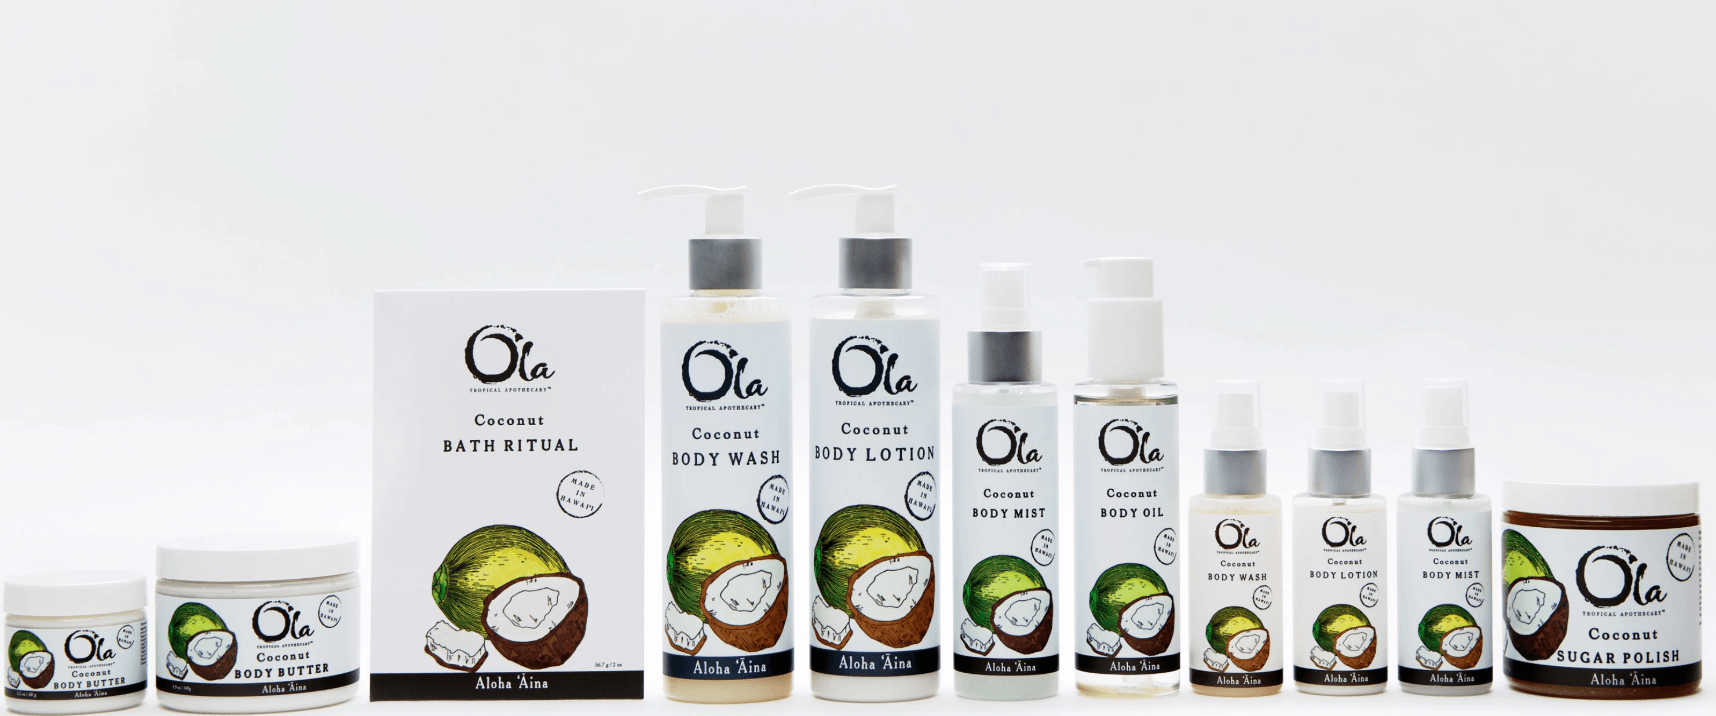 Ola coconut product line